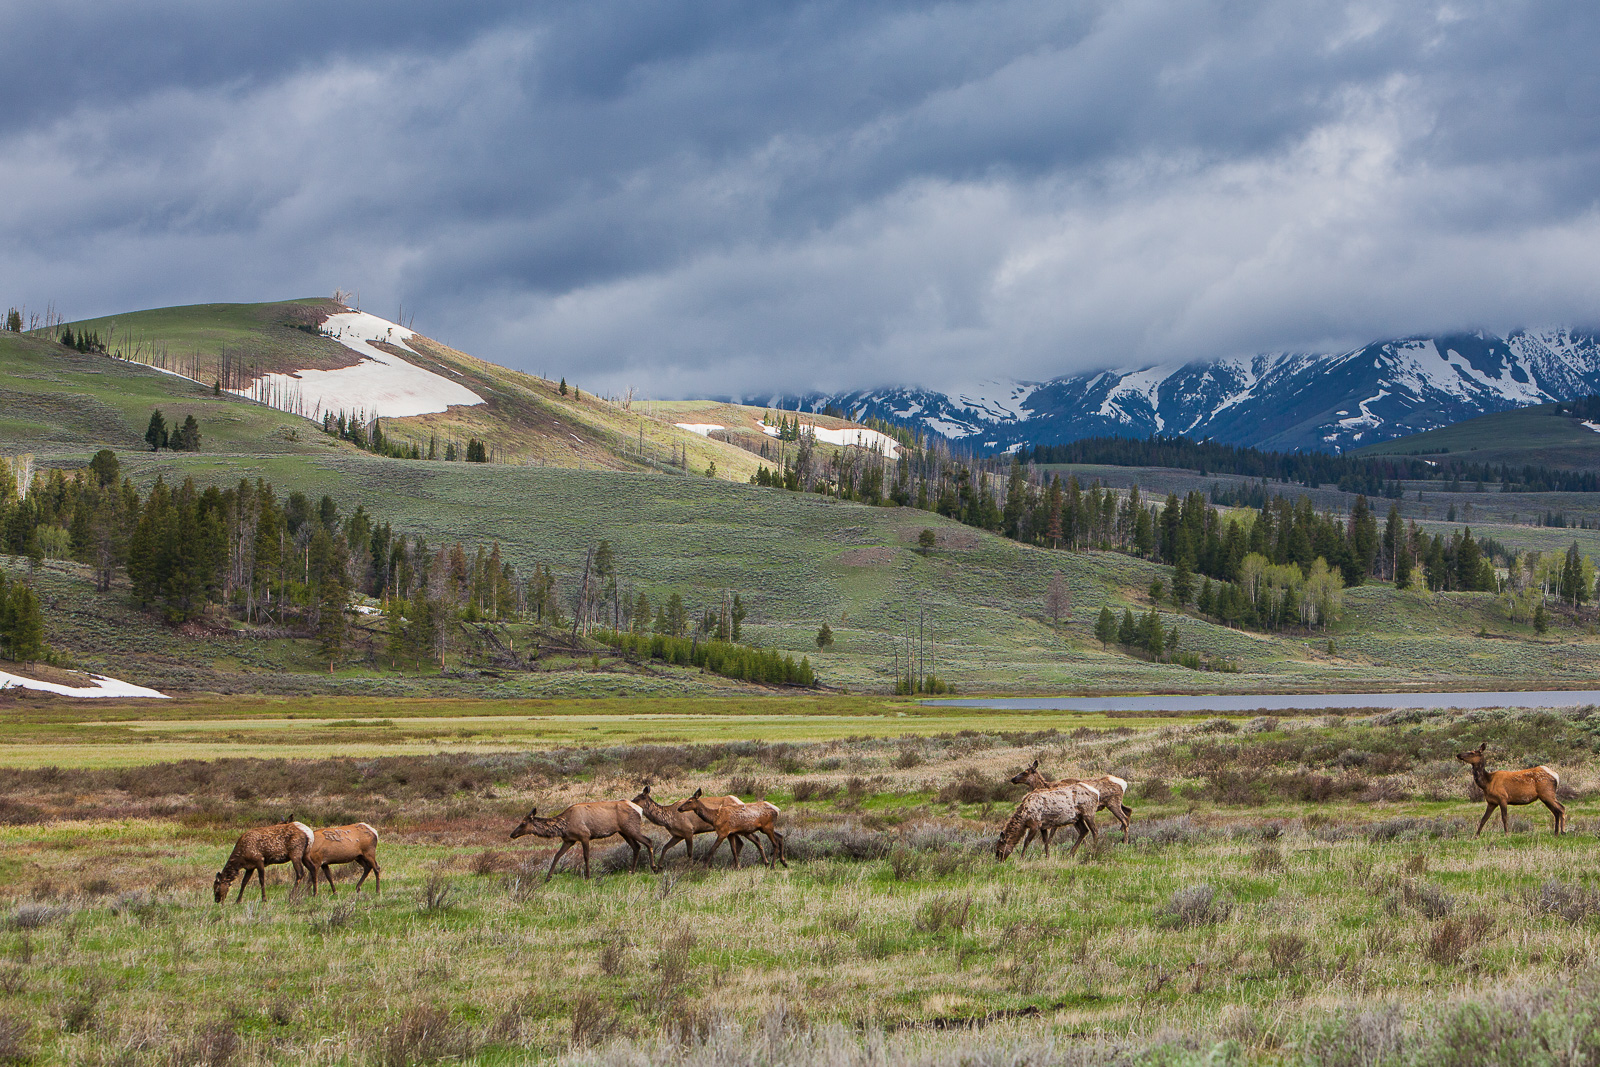 Elk on the Move,Elk,Mammal,Spring,Yellowstone National Park, Wyoming,Lake, photo